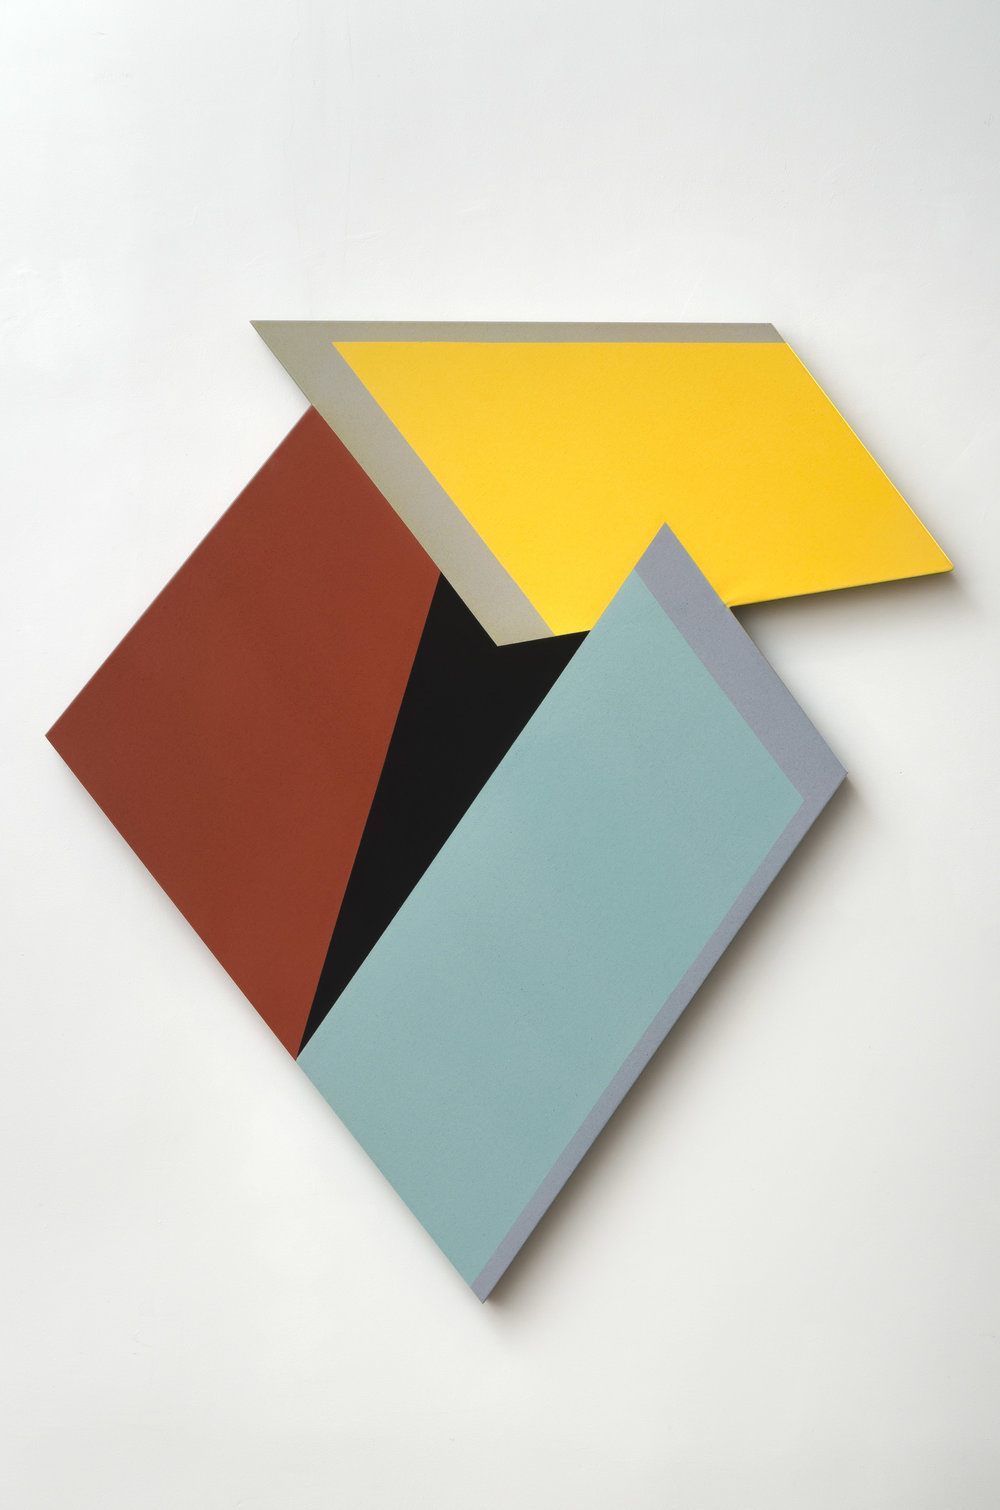 Laget, Mokha, b. 1959   Outskirts #2 , 2018  acrylic and clay pigment on shaped canvas  43 x 47 inches; 109.2 x 119.4 centimeters